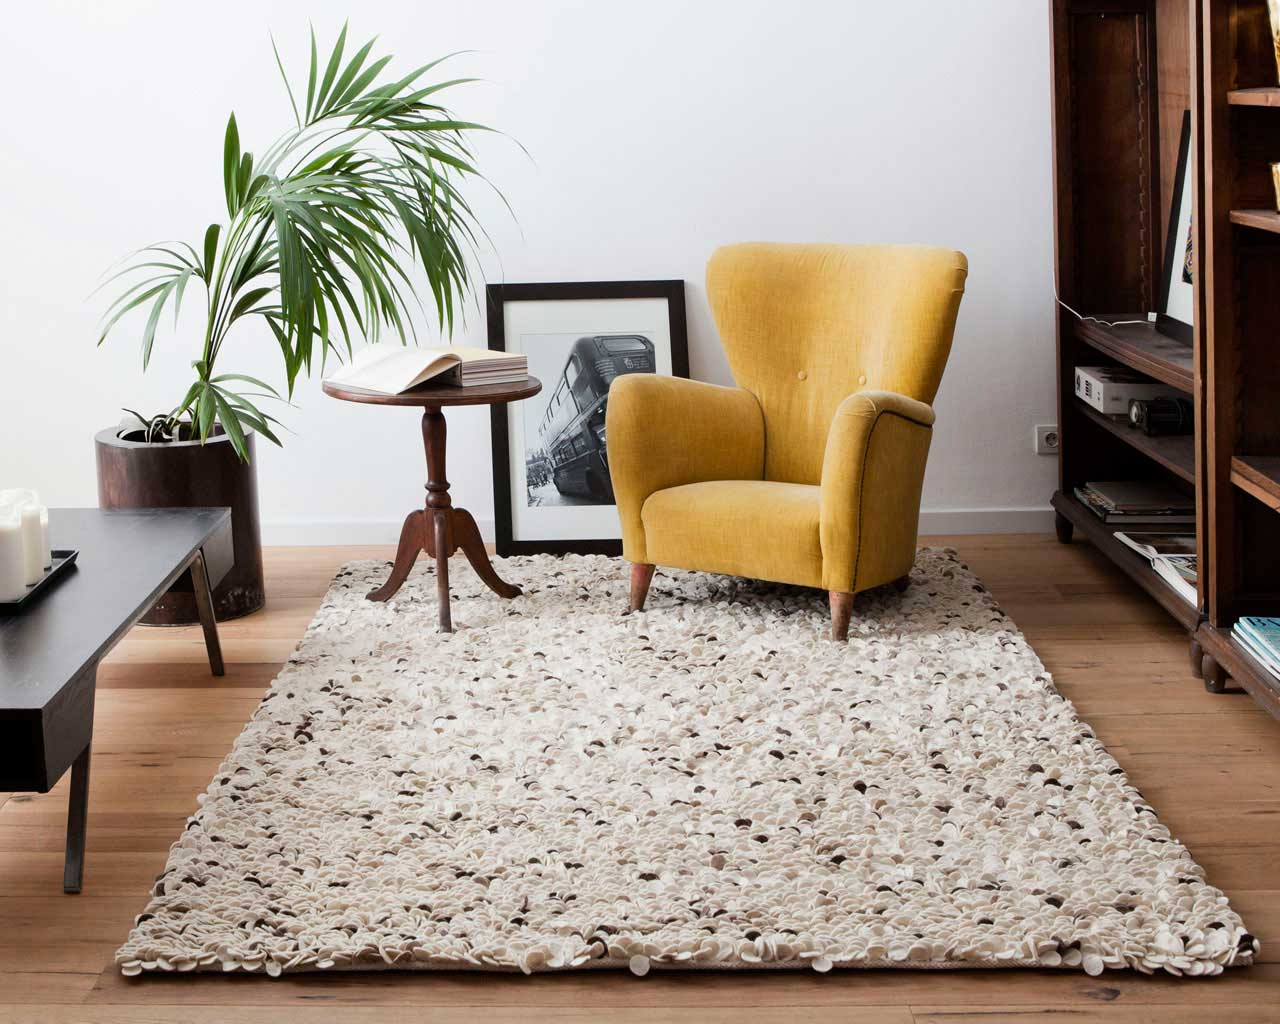 blogger pictures designer carpets